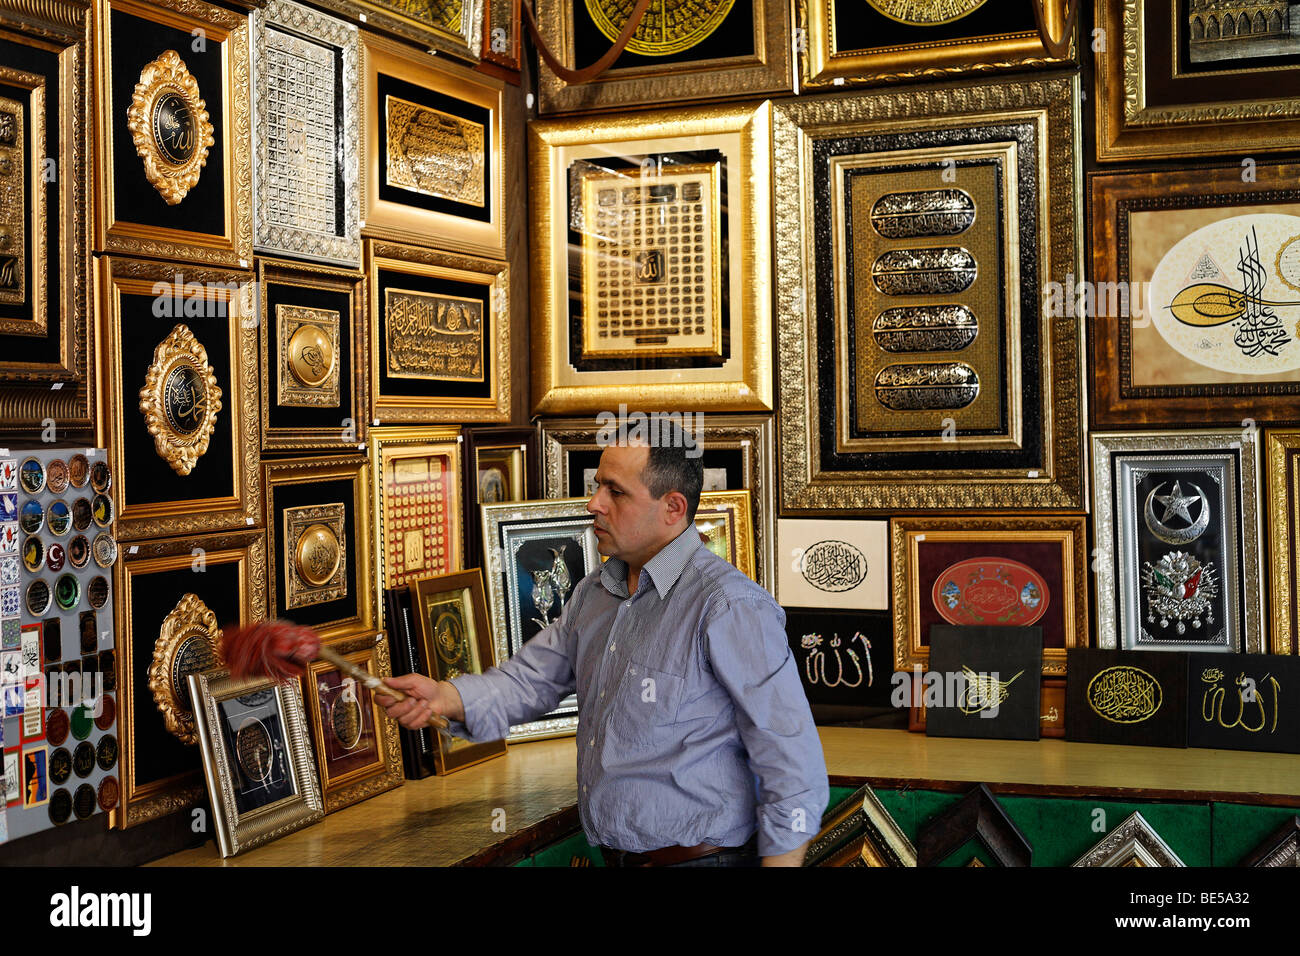 Man brushing the dust off golden frame, with calligraphic emblems, book bazaar, Beyazit Square, Istanbul, Turkey Stock Photo